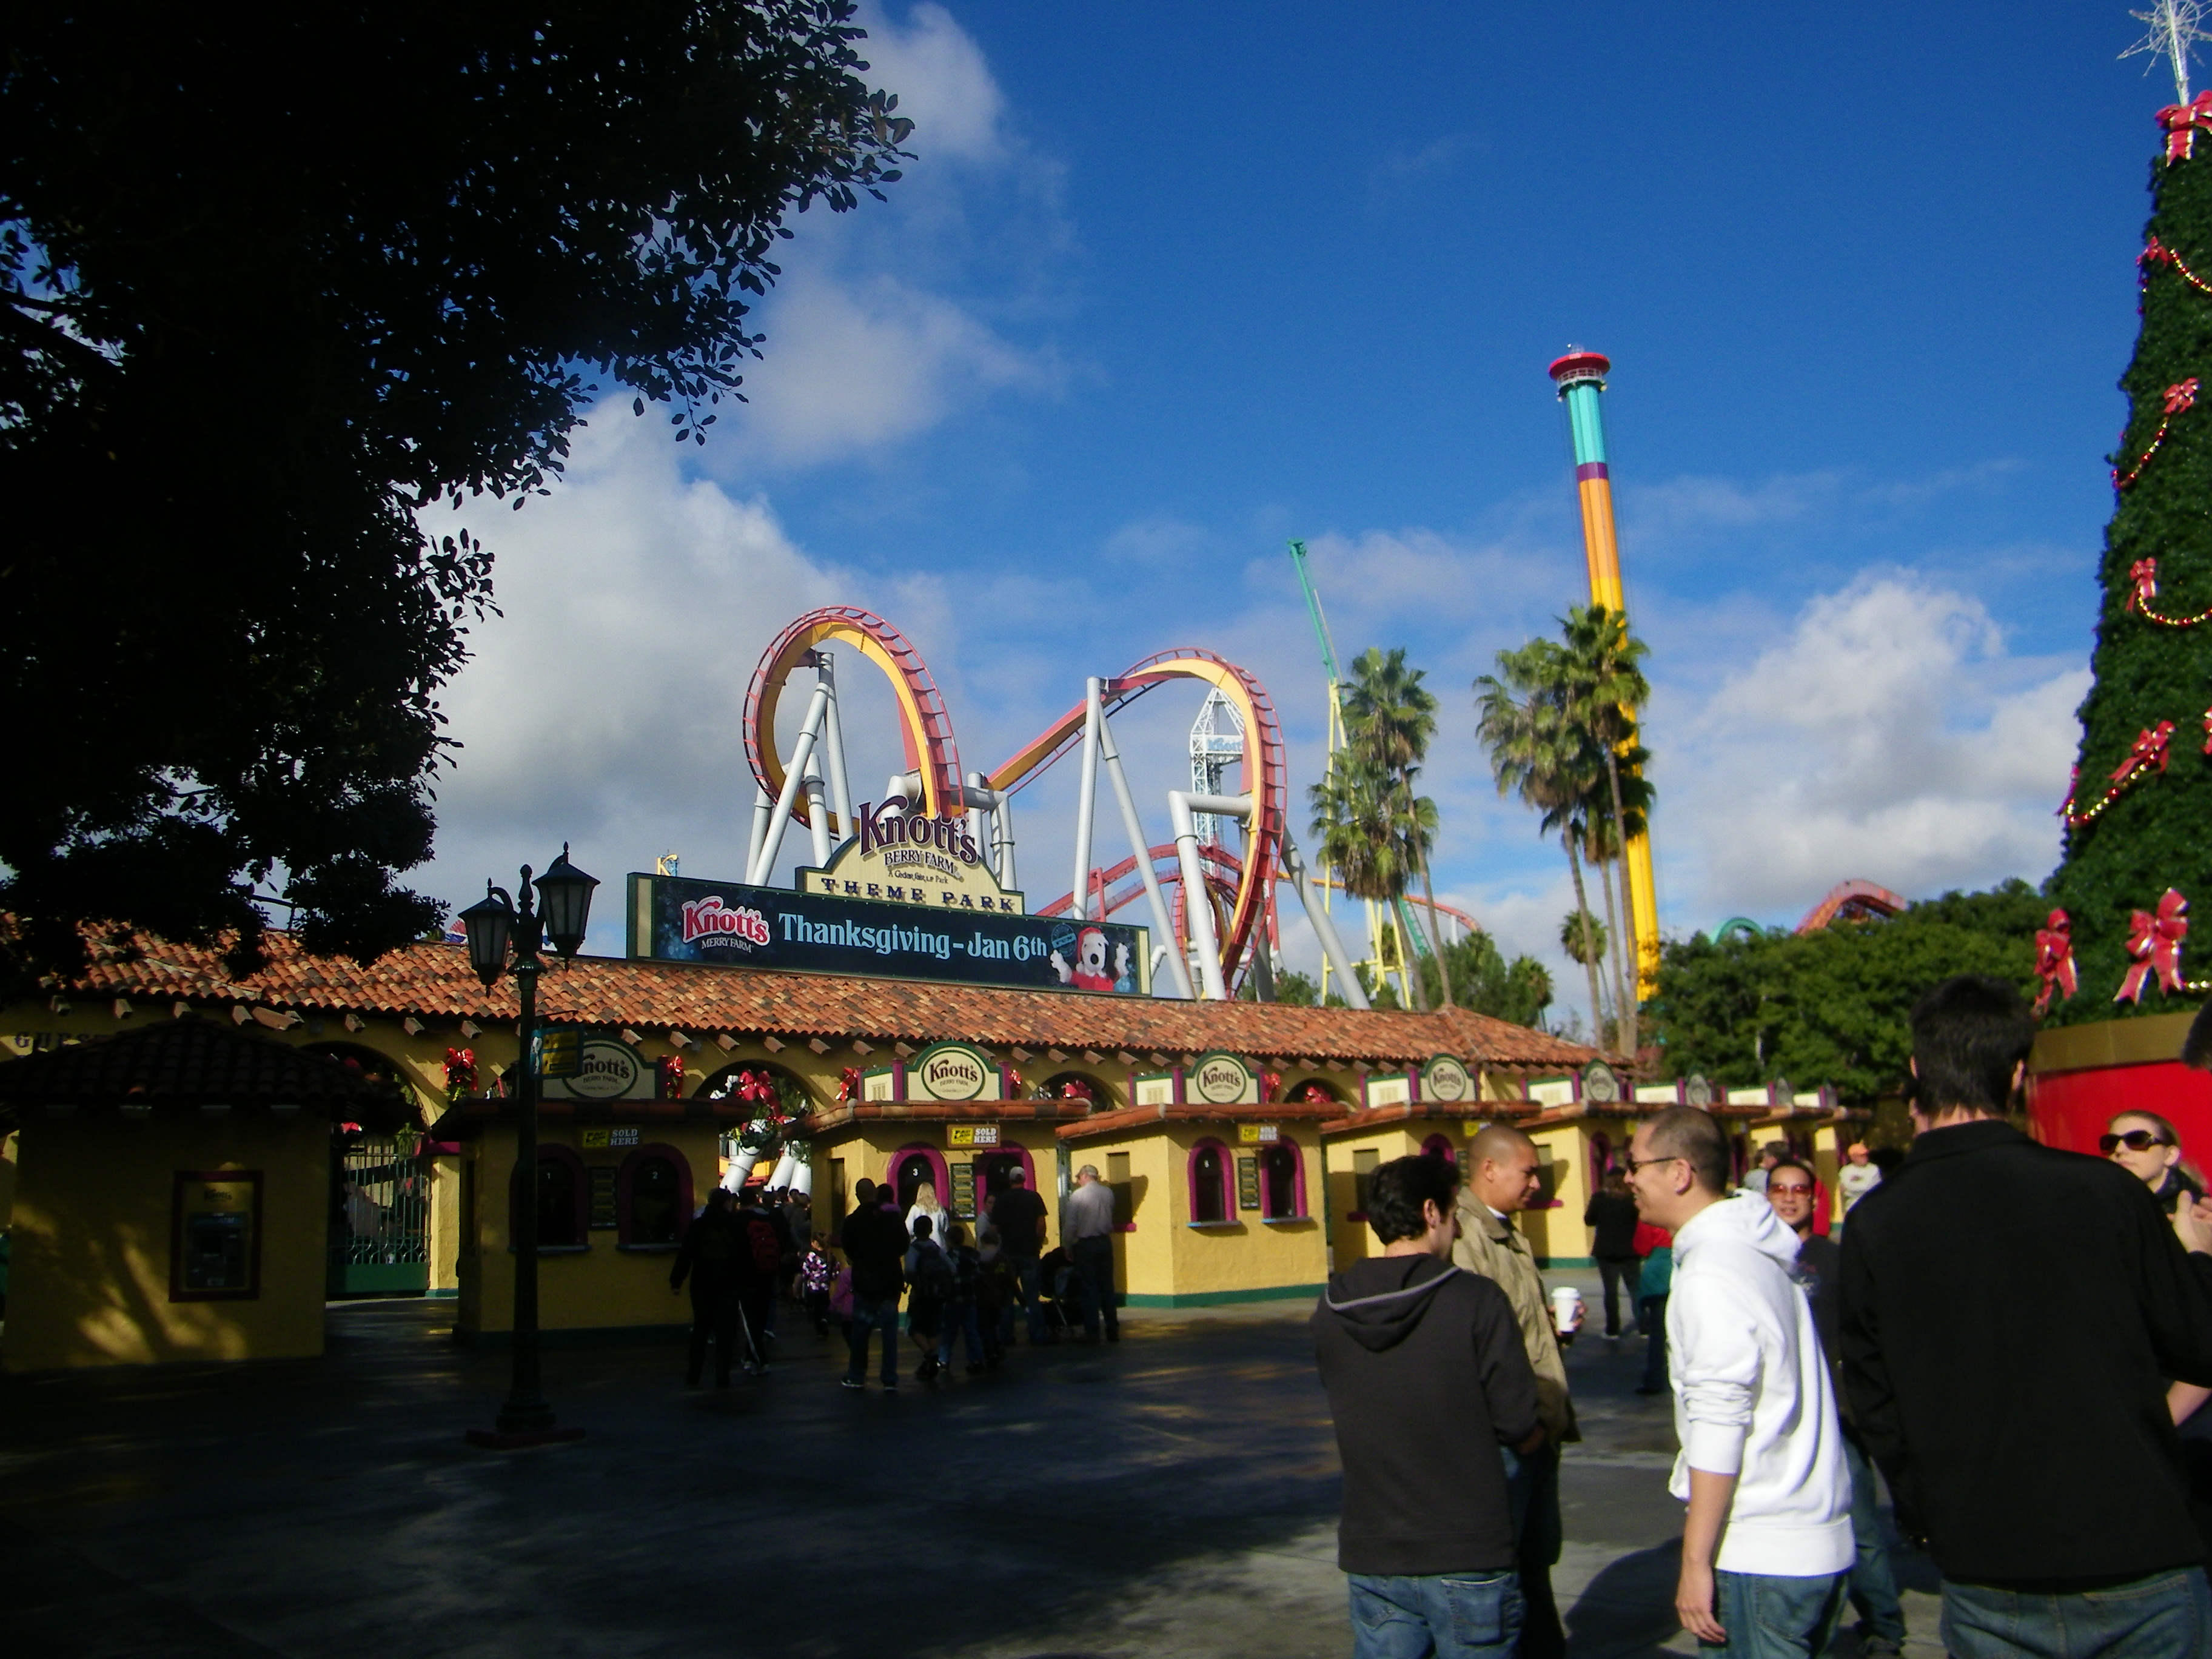 Knott's Berry Farm 2012